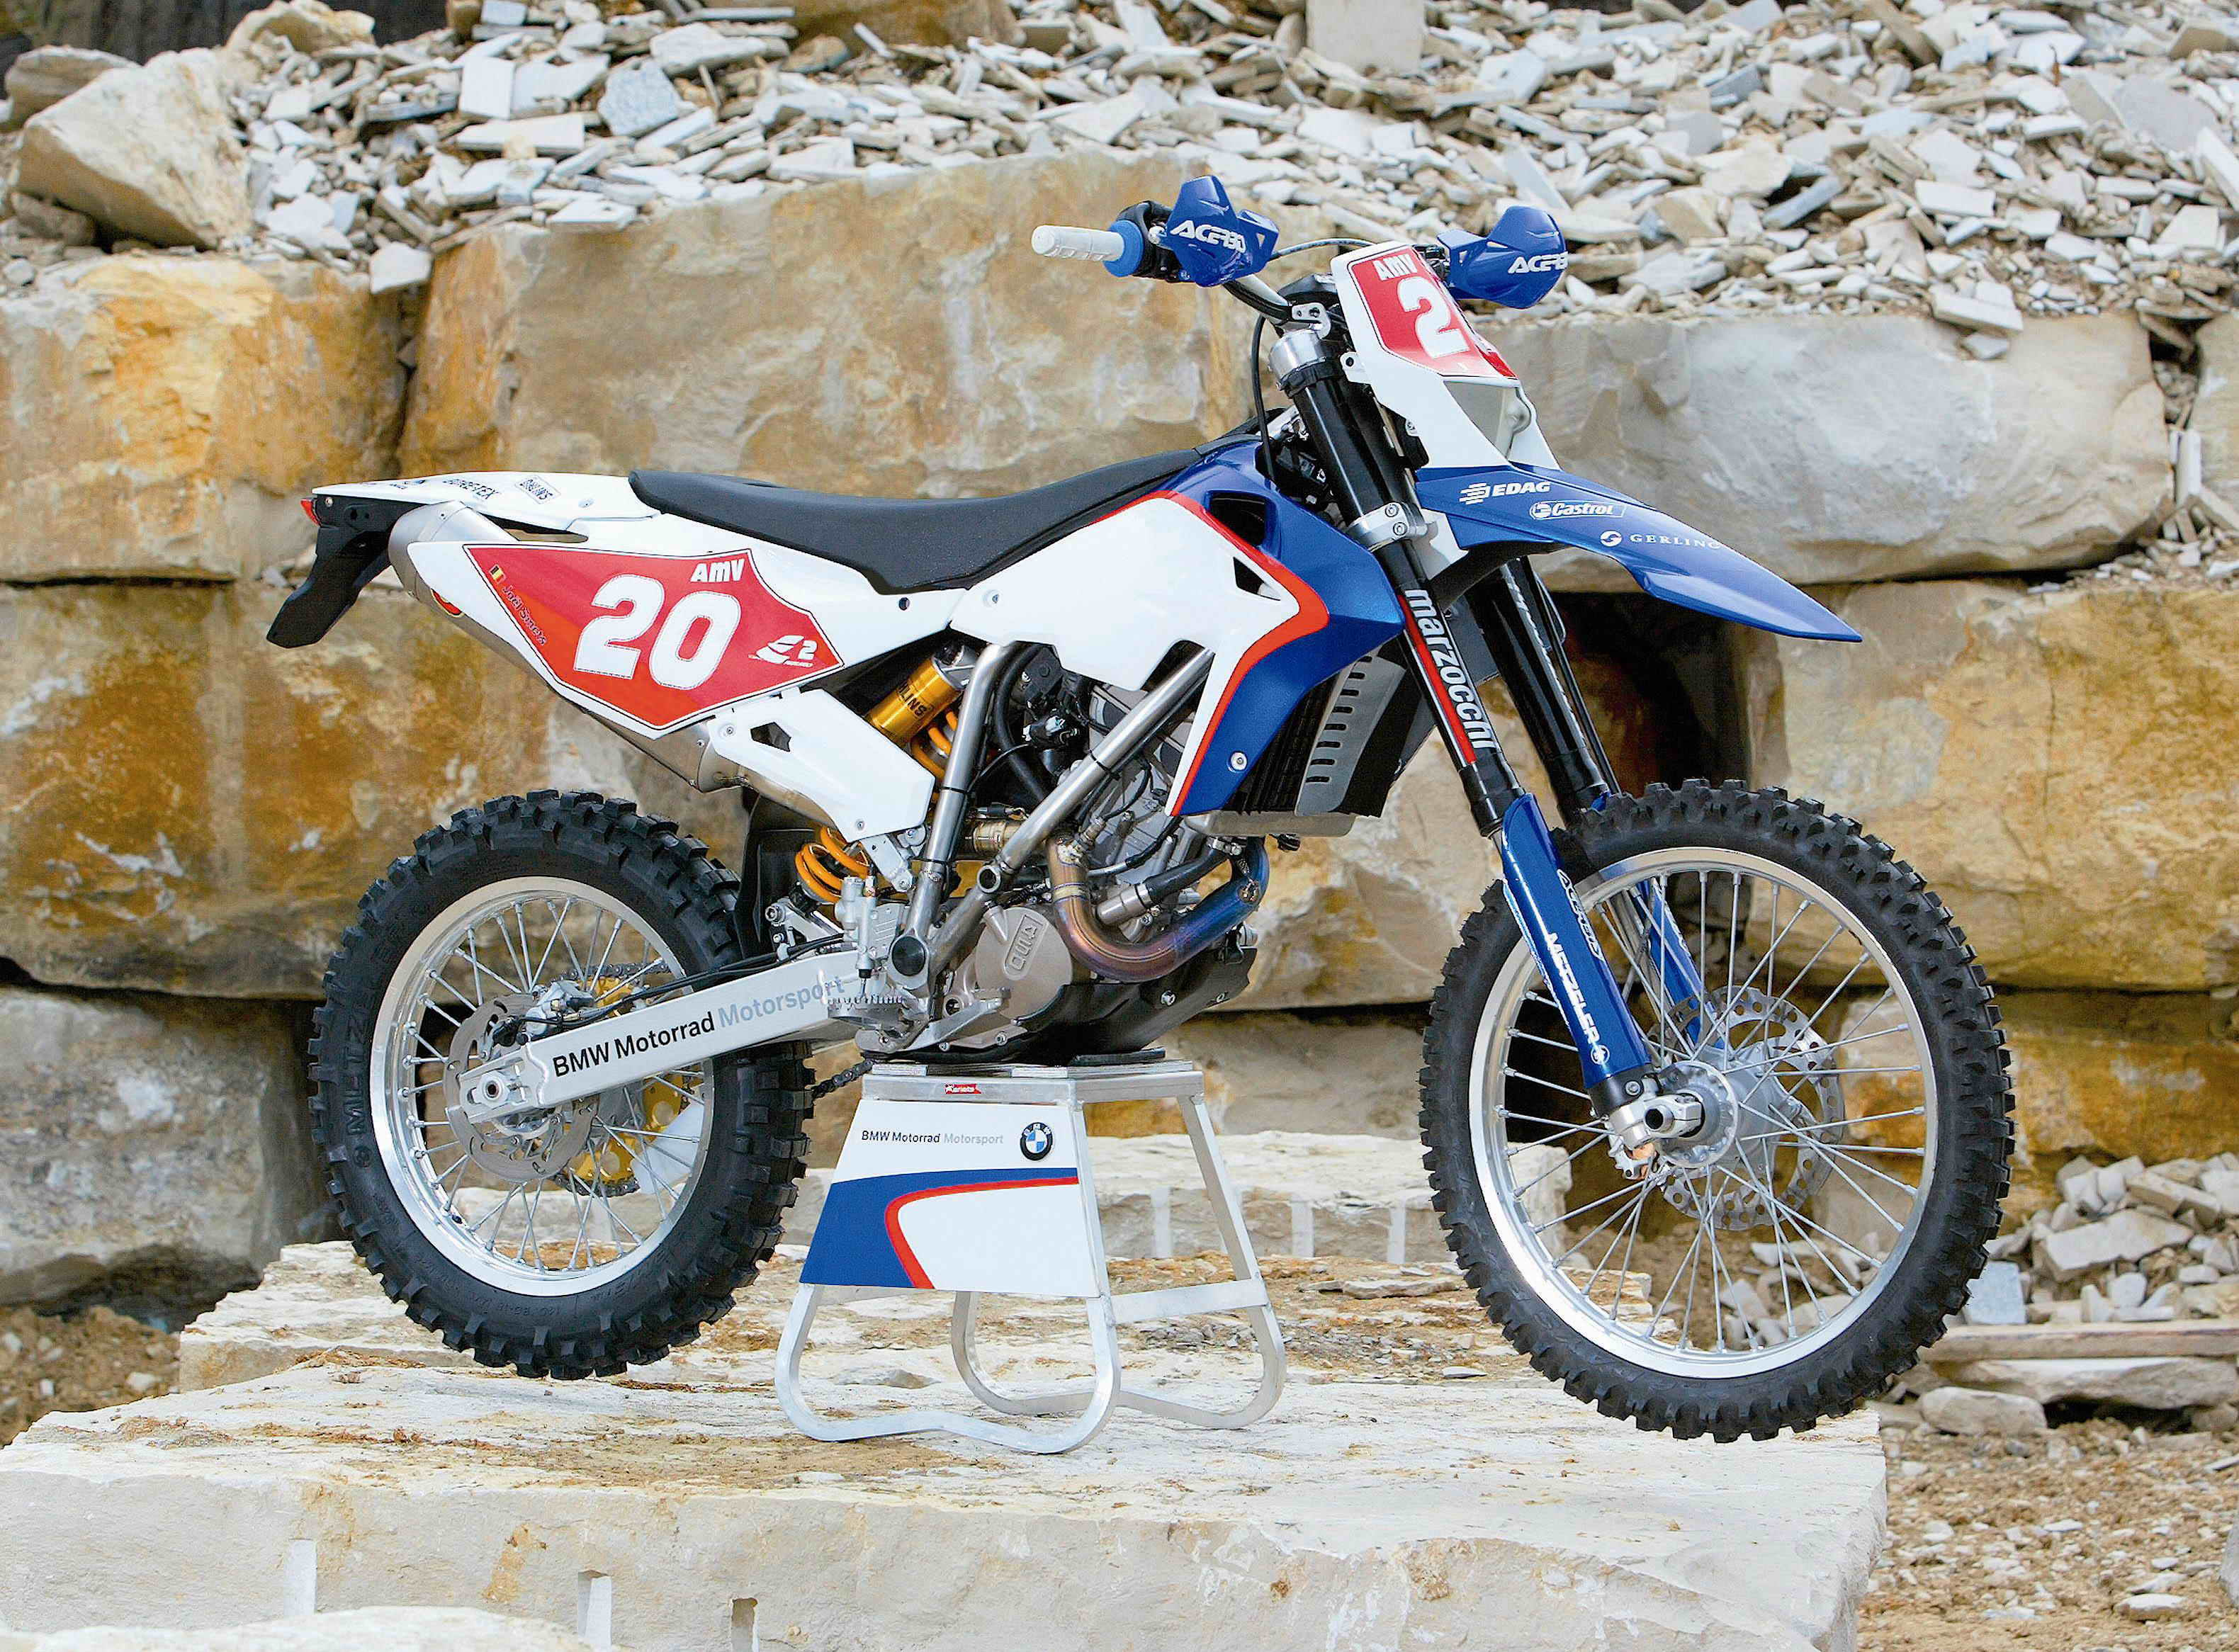 enduro bmw race indiana sports makes gncc motorcycle motocross crawfordsville motorcycles debut tests motorrad moto competition concept zombdrive webbikeworld topspeed